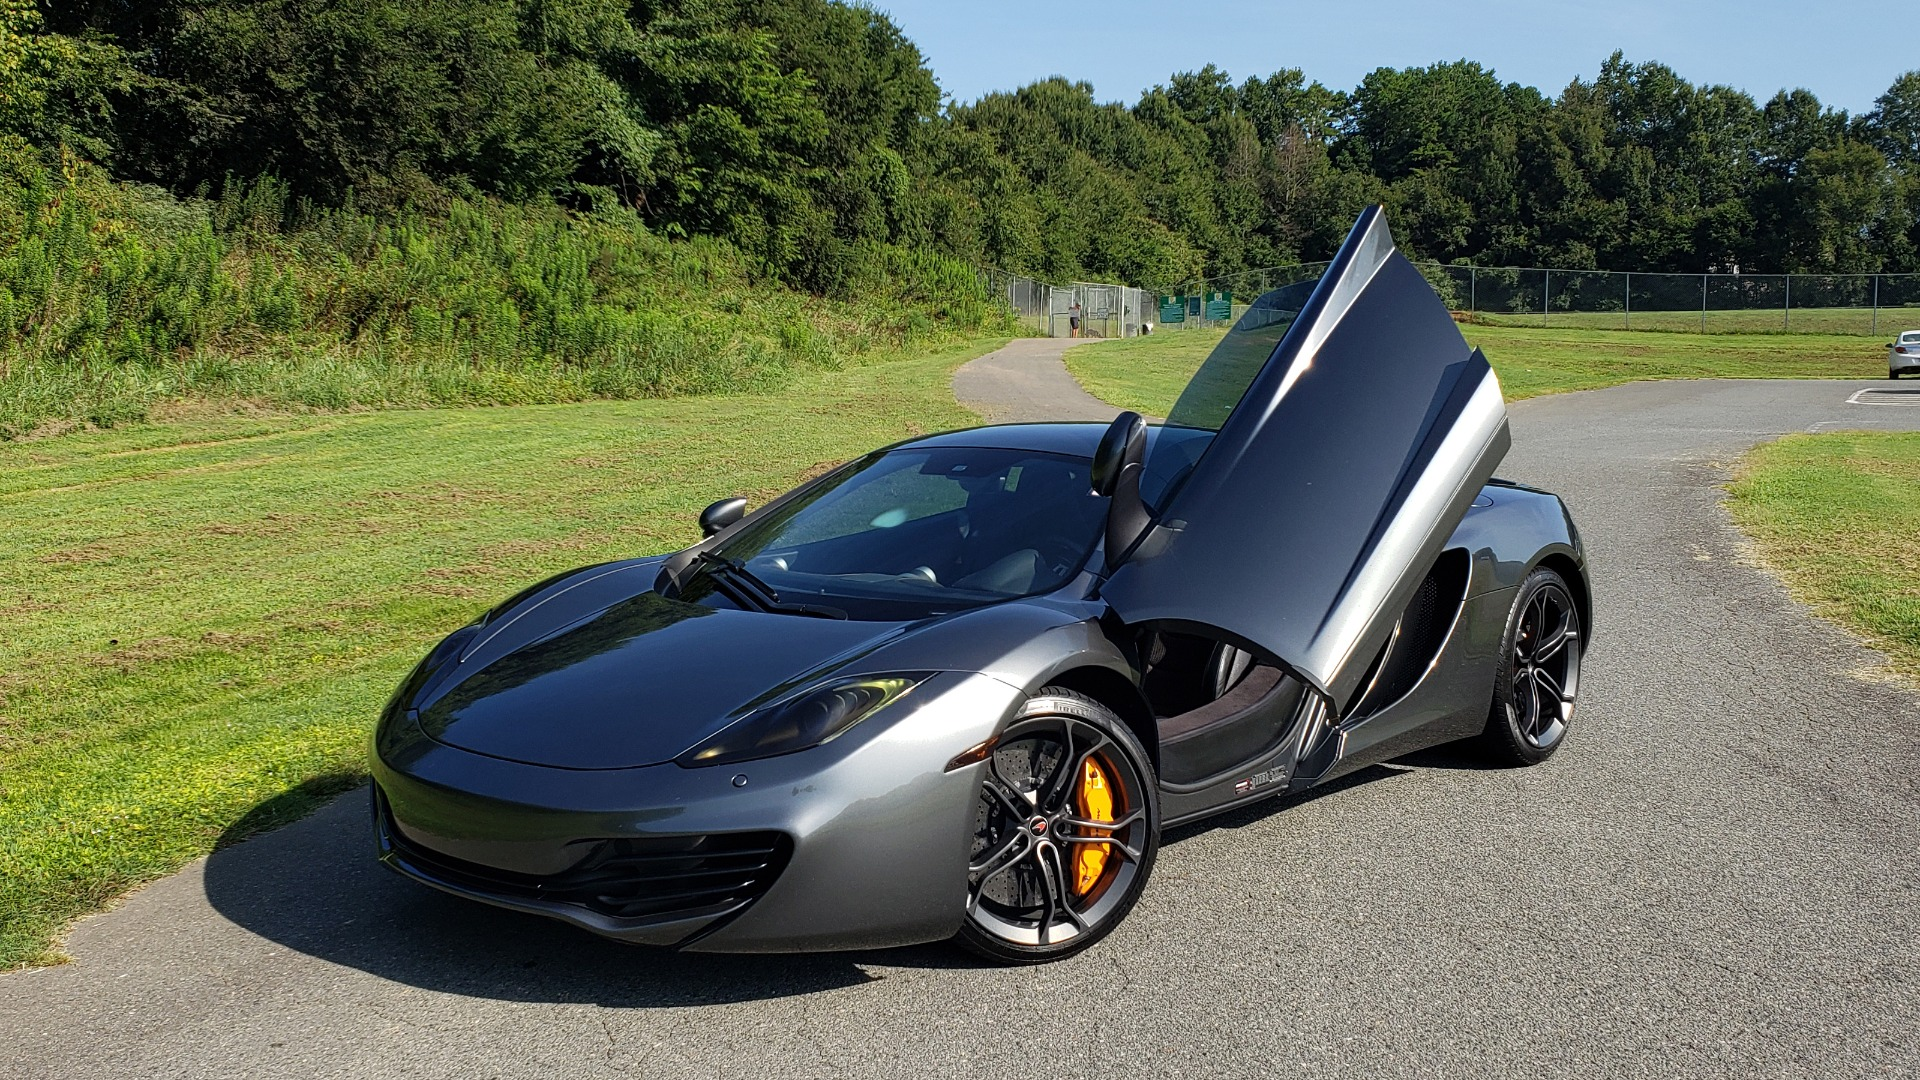 Used 2012 McLaren MP4-12C COUPE / 3.8 L V8 592HP / AUTO / NAV / CCB / LOW MILES for sale Sold at Formula Imports in Charlotte NC 28227 3